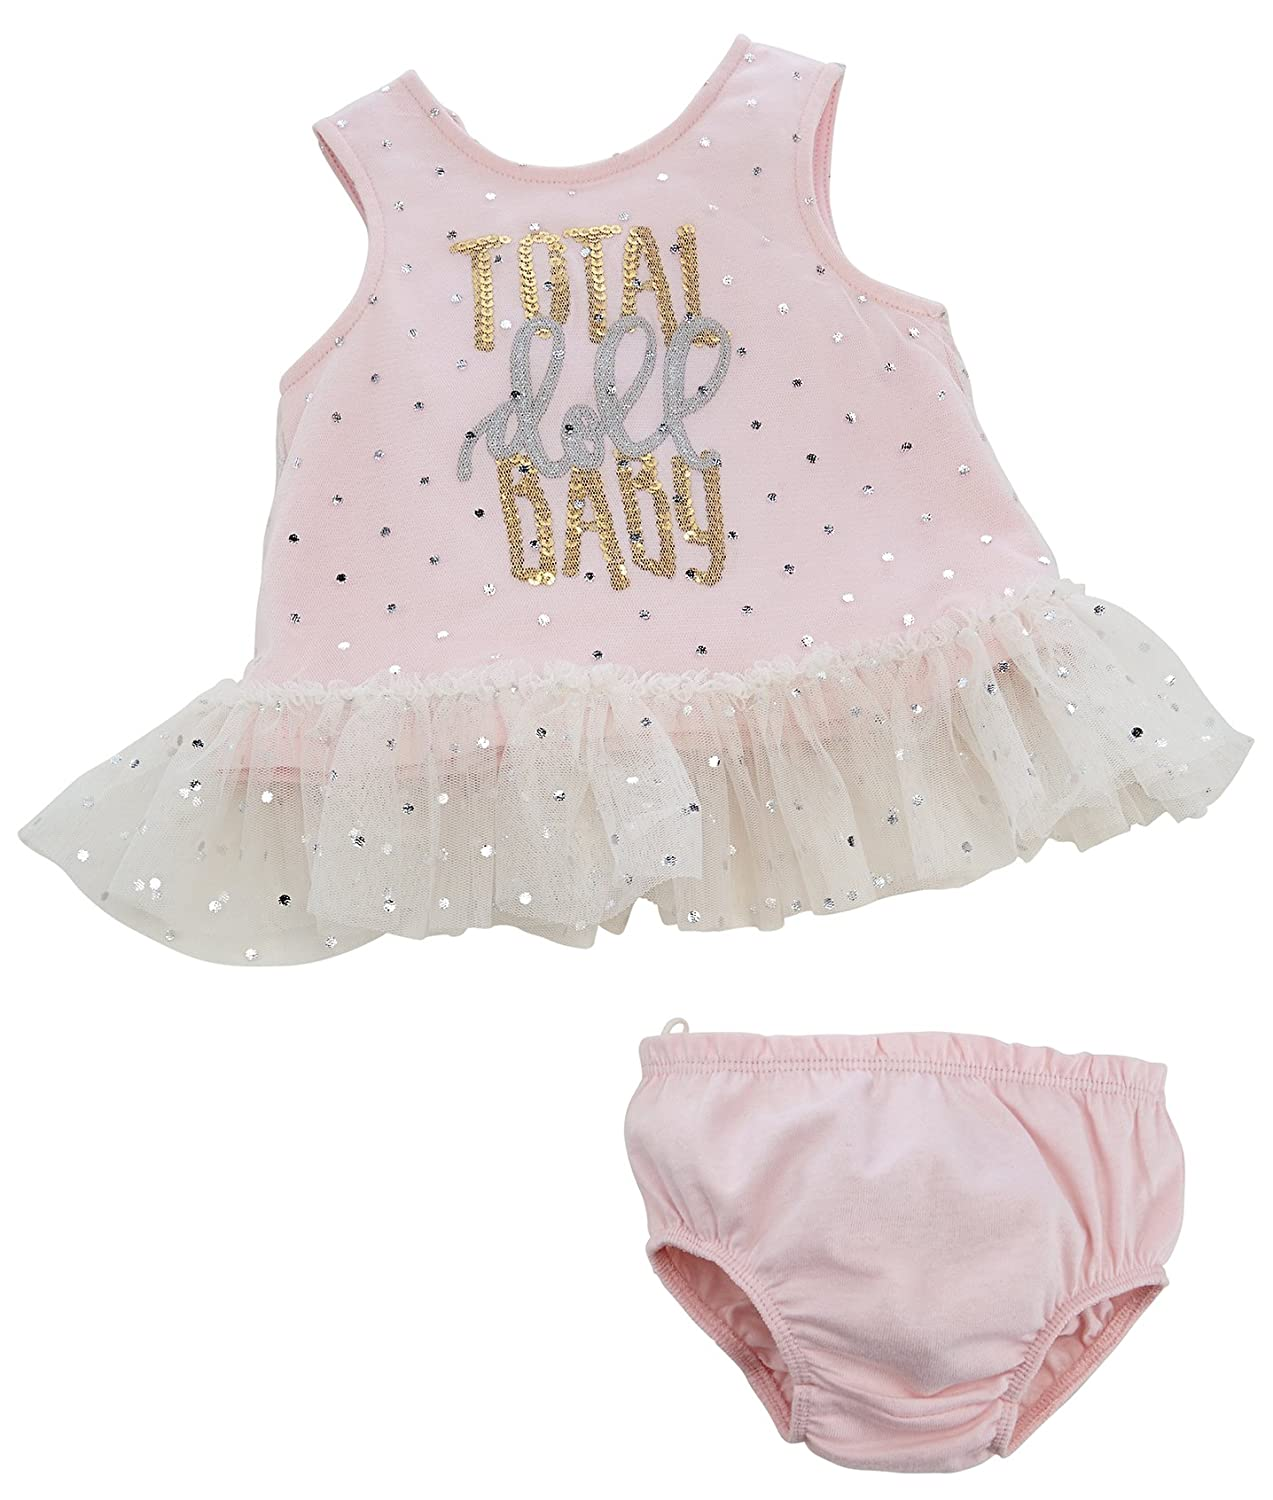 0efdb5fab Online Cheap wholesale Mud Pie Baby Girls Two Piece Bloomer Set Sleeveless  Short Sets Suppliers